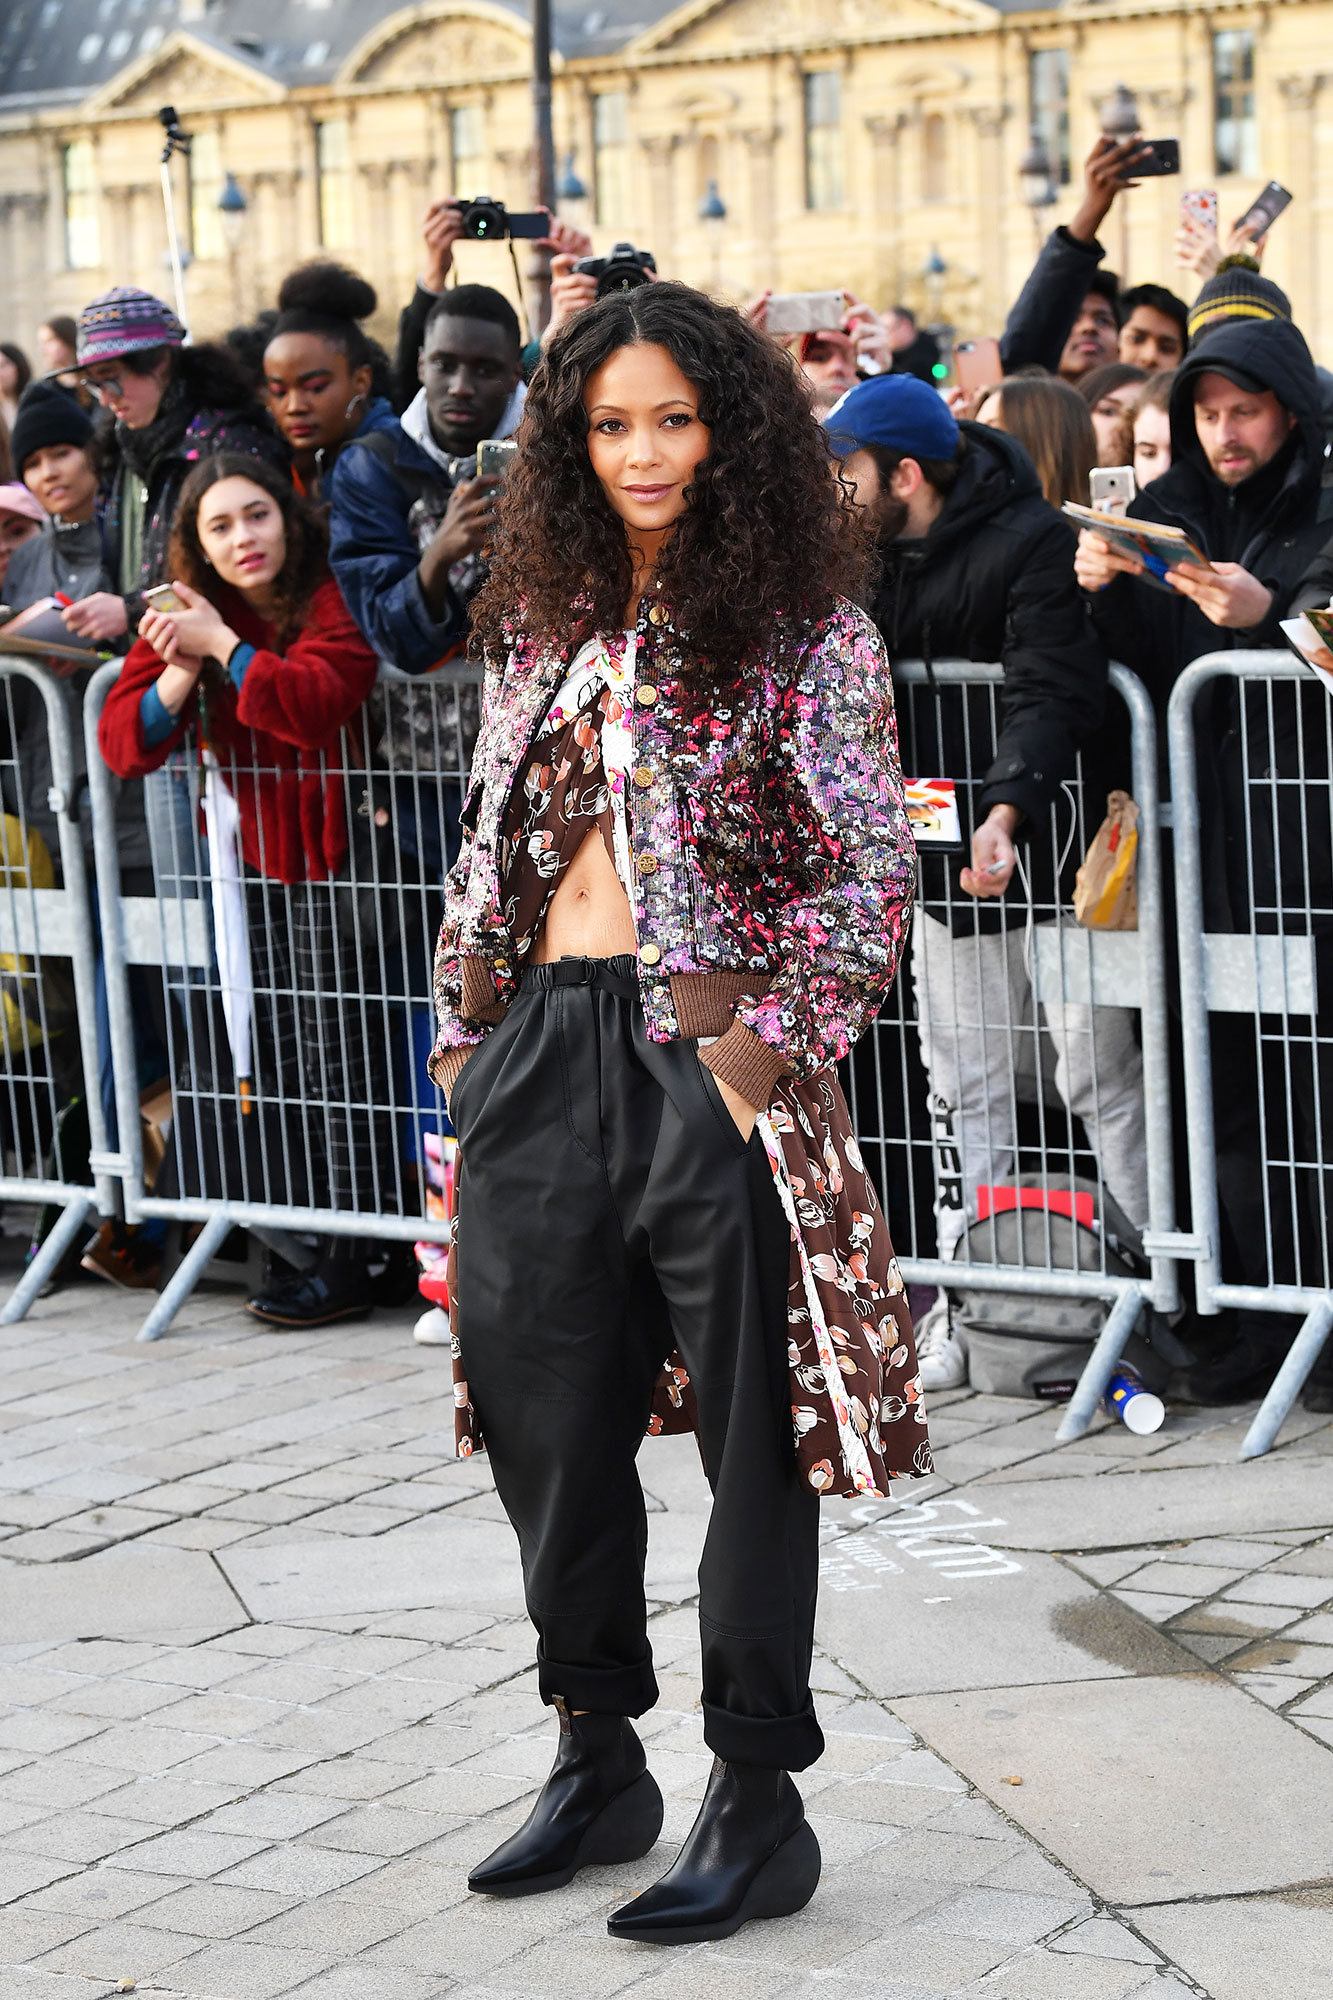 Thandie Newton Stars Closed Out Paris Fashion Week on a Sartorial High Note - The Westworld star flashed her abs in a layered floral look outside the Louis Vuitton show on Tuesday, March 5.